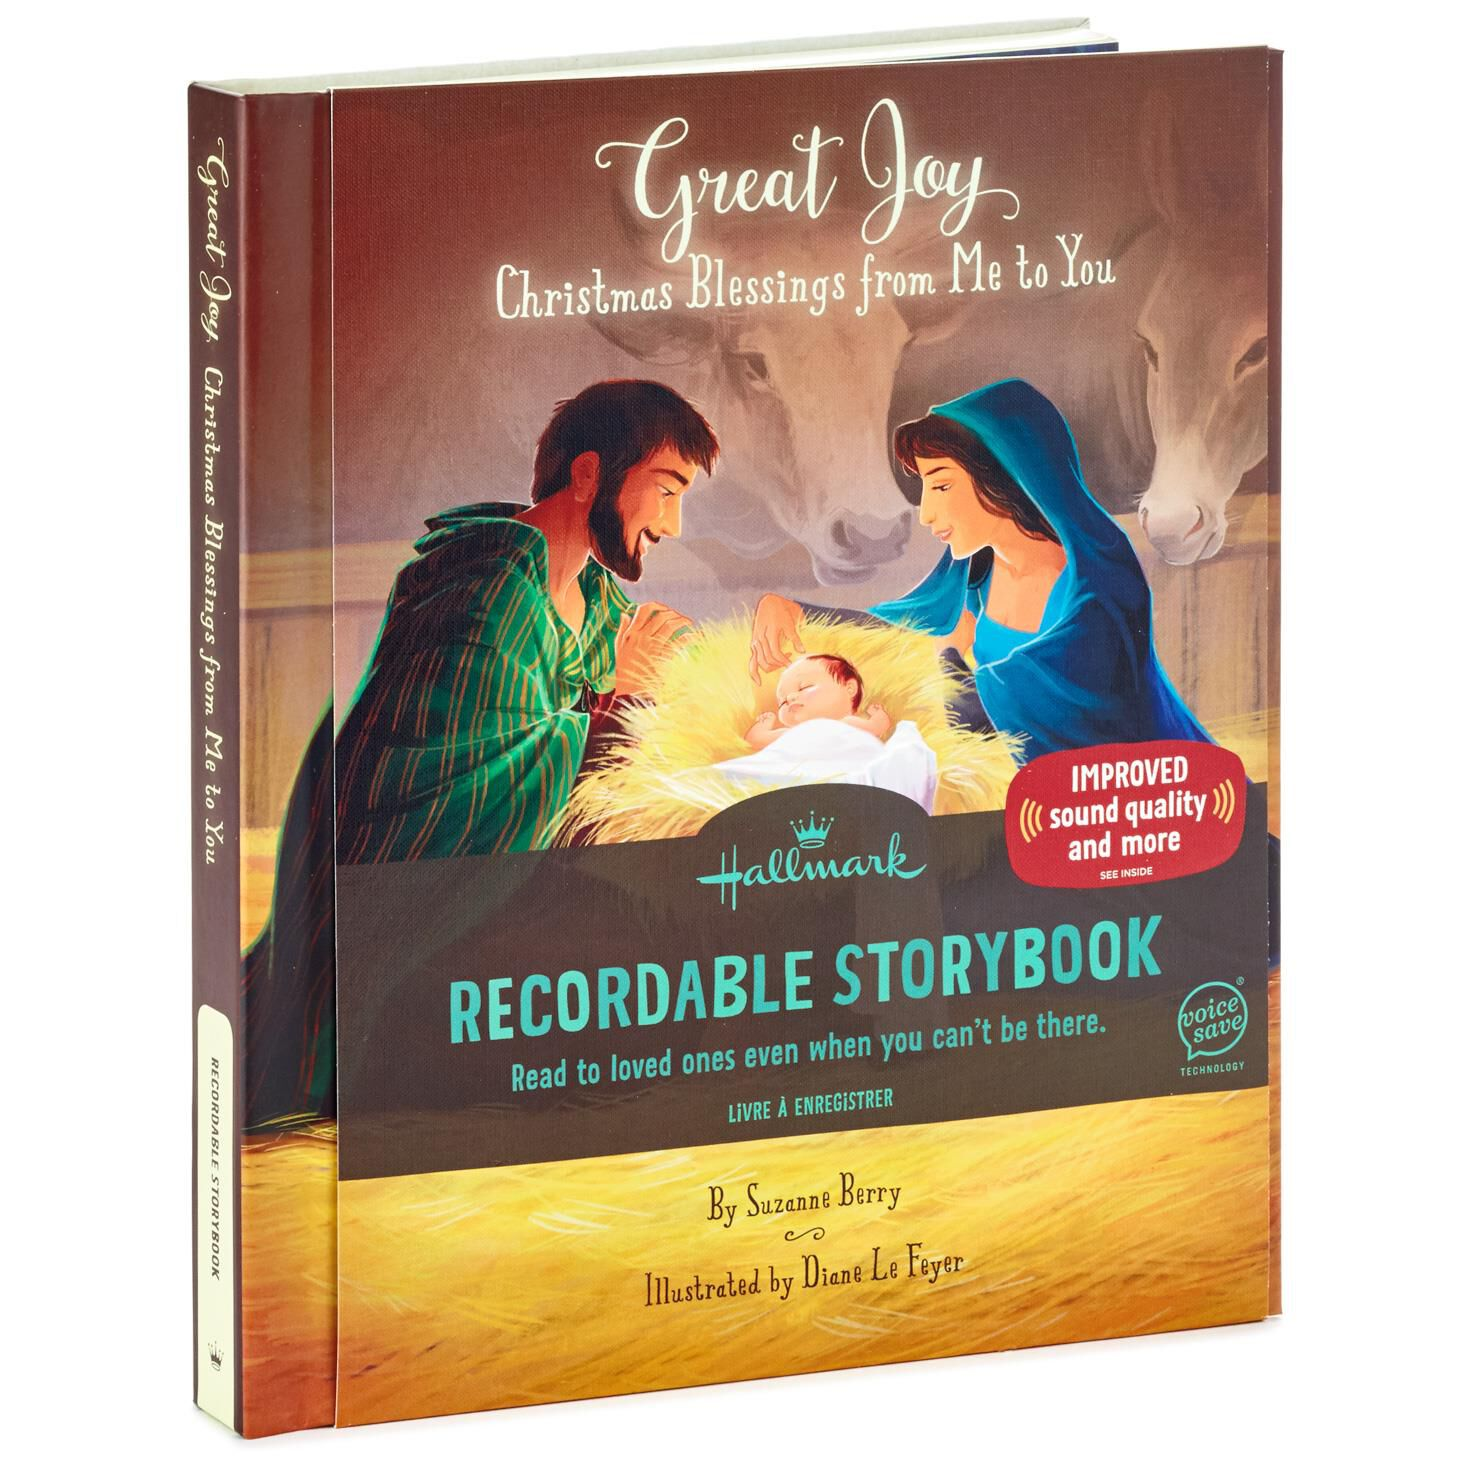 Great Joy: A Book of Christmas Blessings Recordable Storybook ...